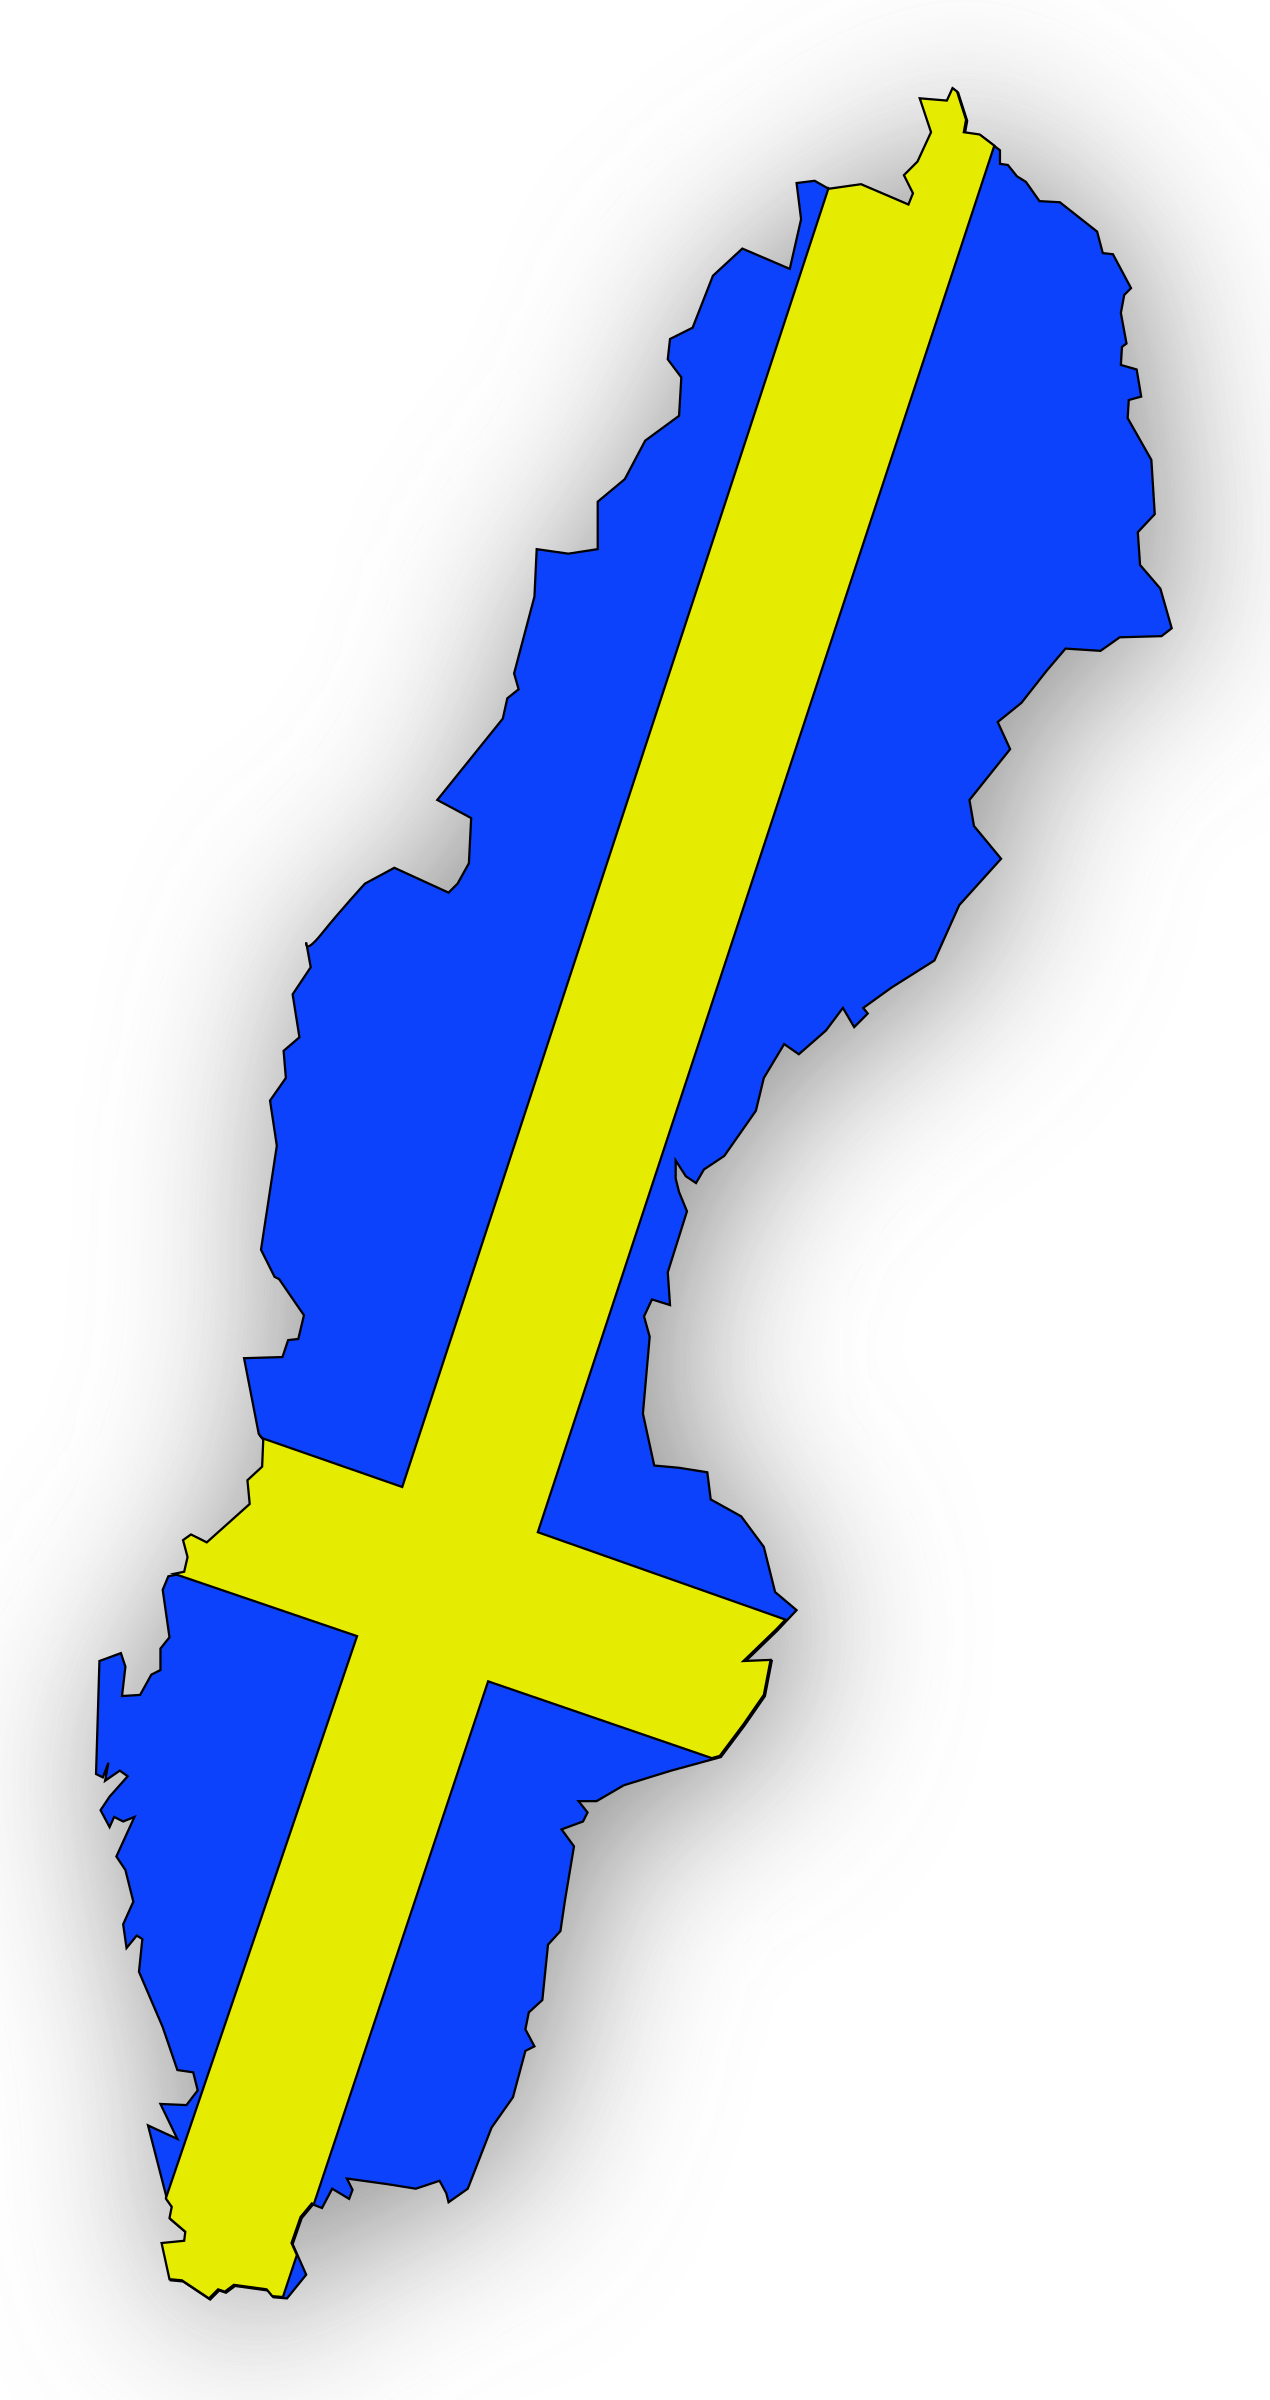 Sweden Flag In Sweden Map by mystica